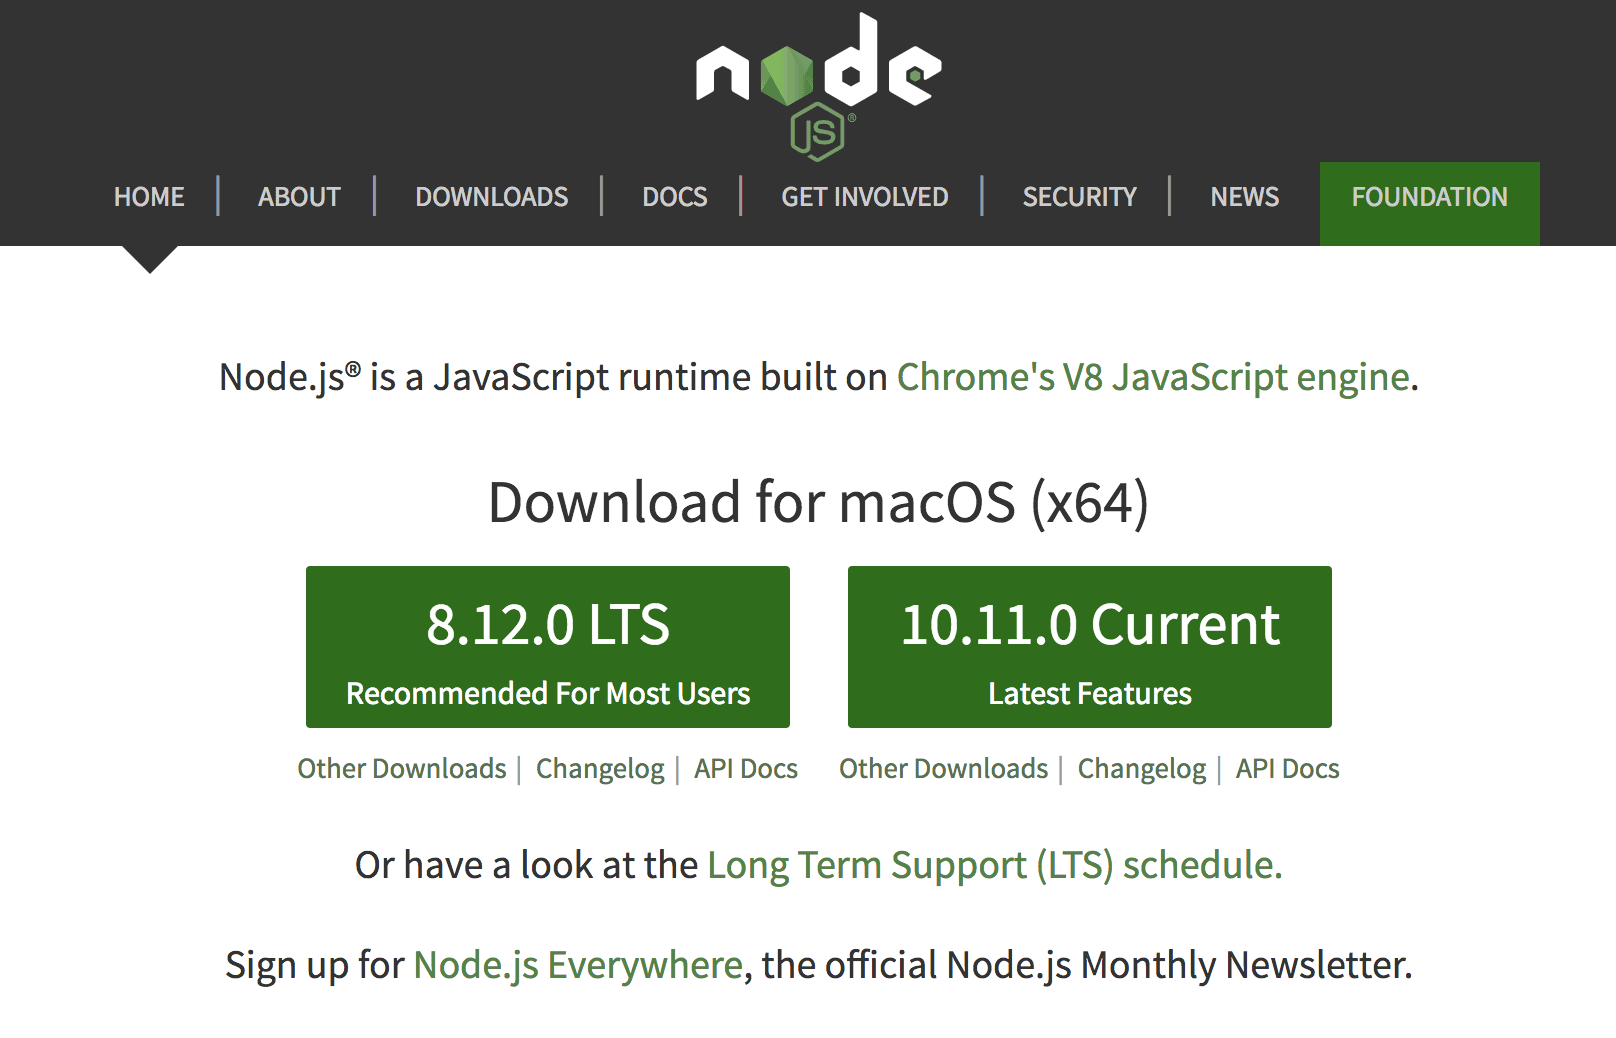 Installing node js on macOS Mojave, macOS Sierra and earlier OSX